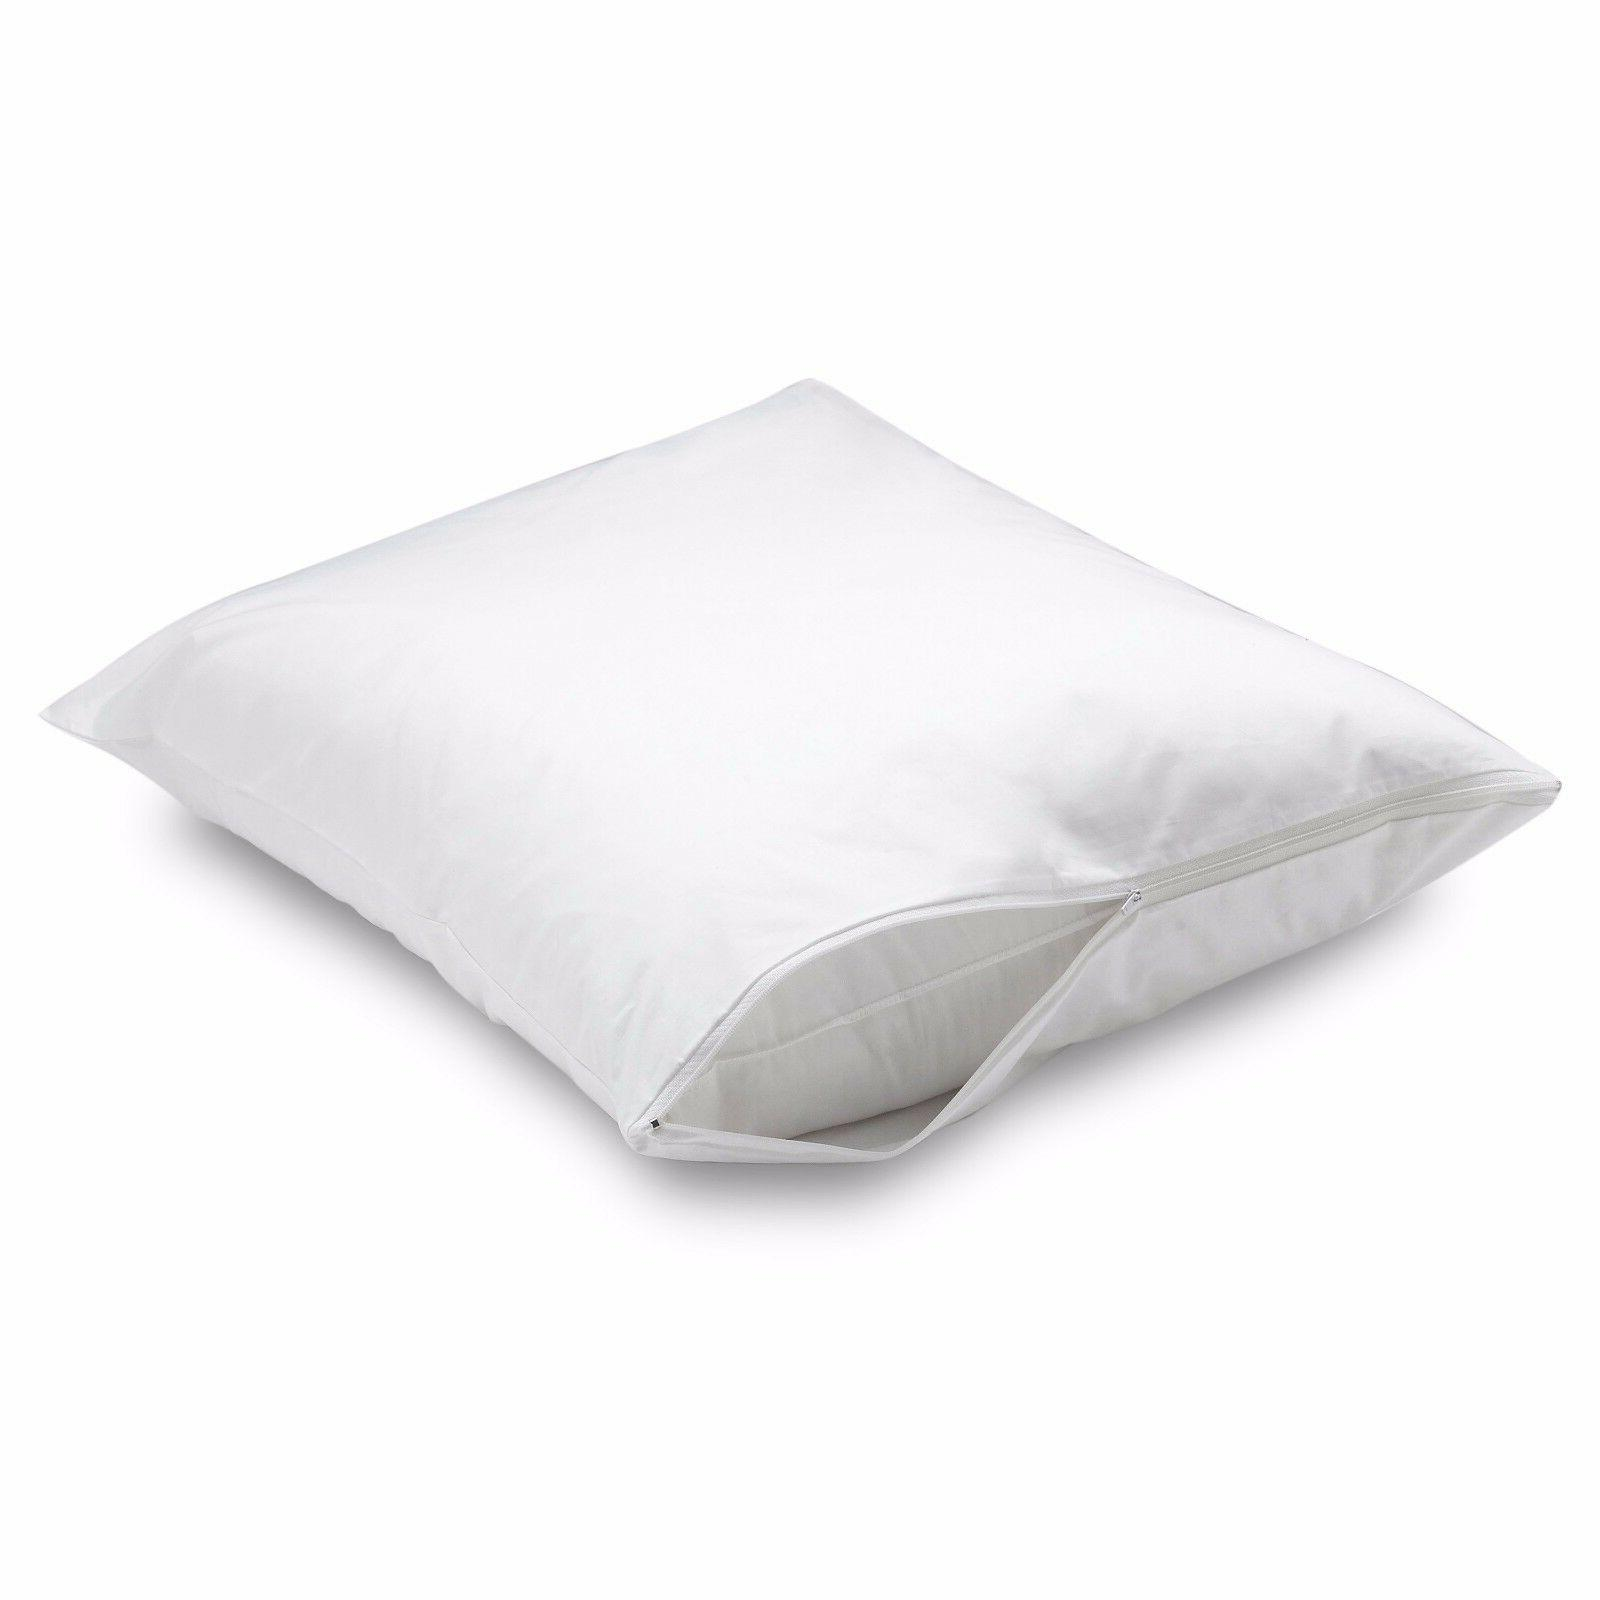 2 DELUXE ZIPPERED FABRIC PILLOW COVERS BED BUG PROTECTOR, HY